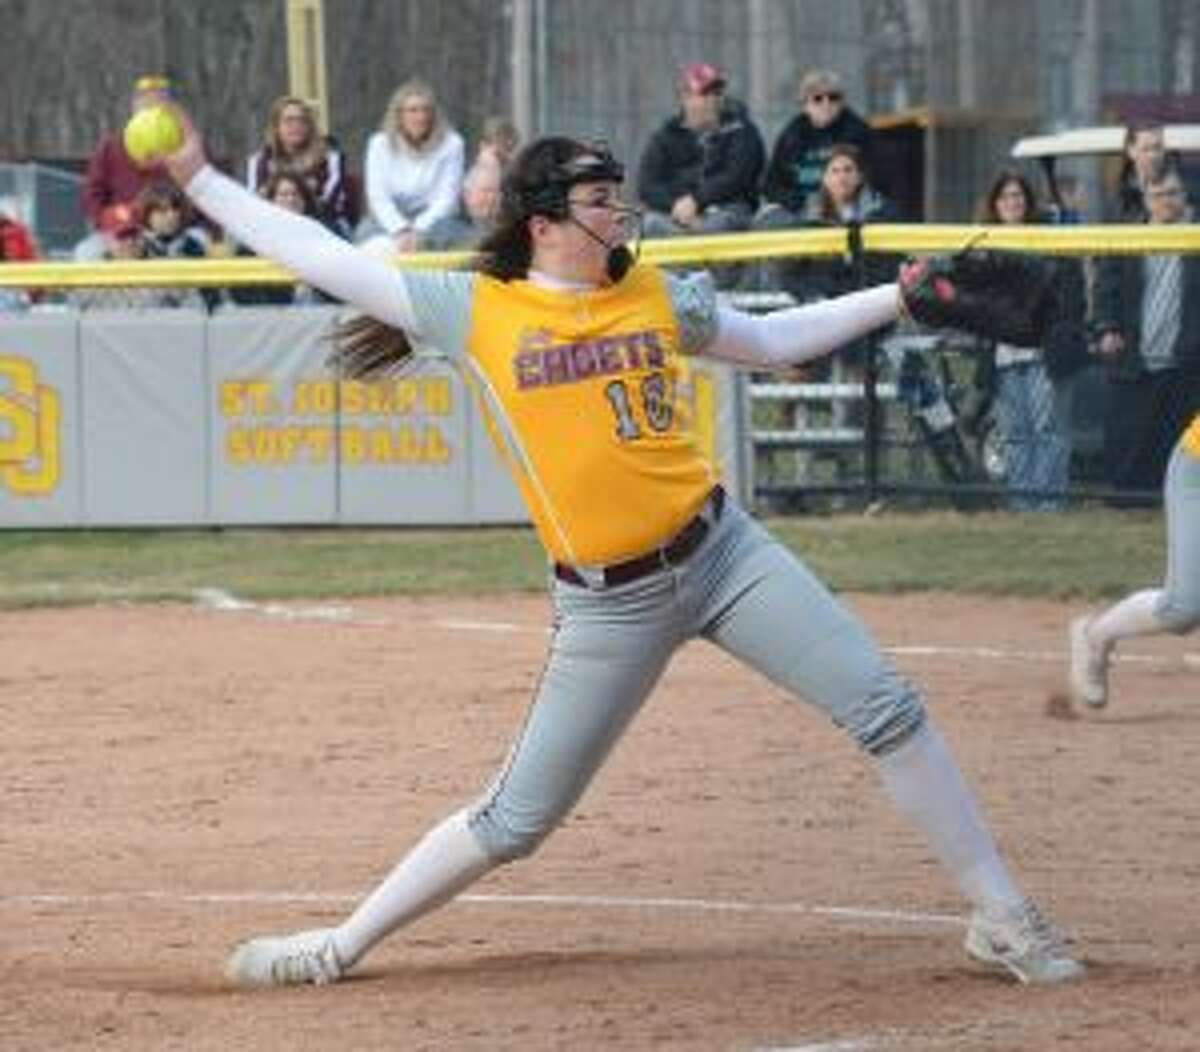 Payton Doiron tossed a one-hitter and struck out nine Stamford batters. - Andy Hutchison photo